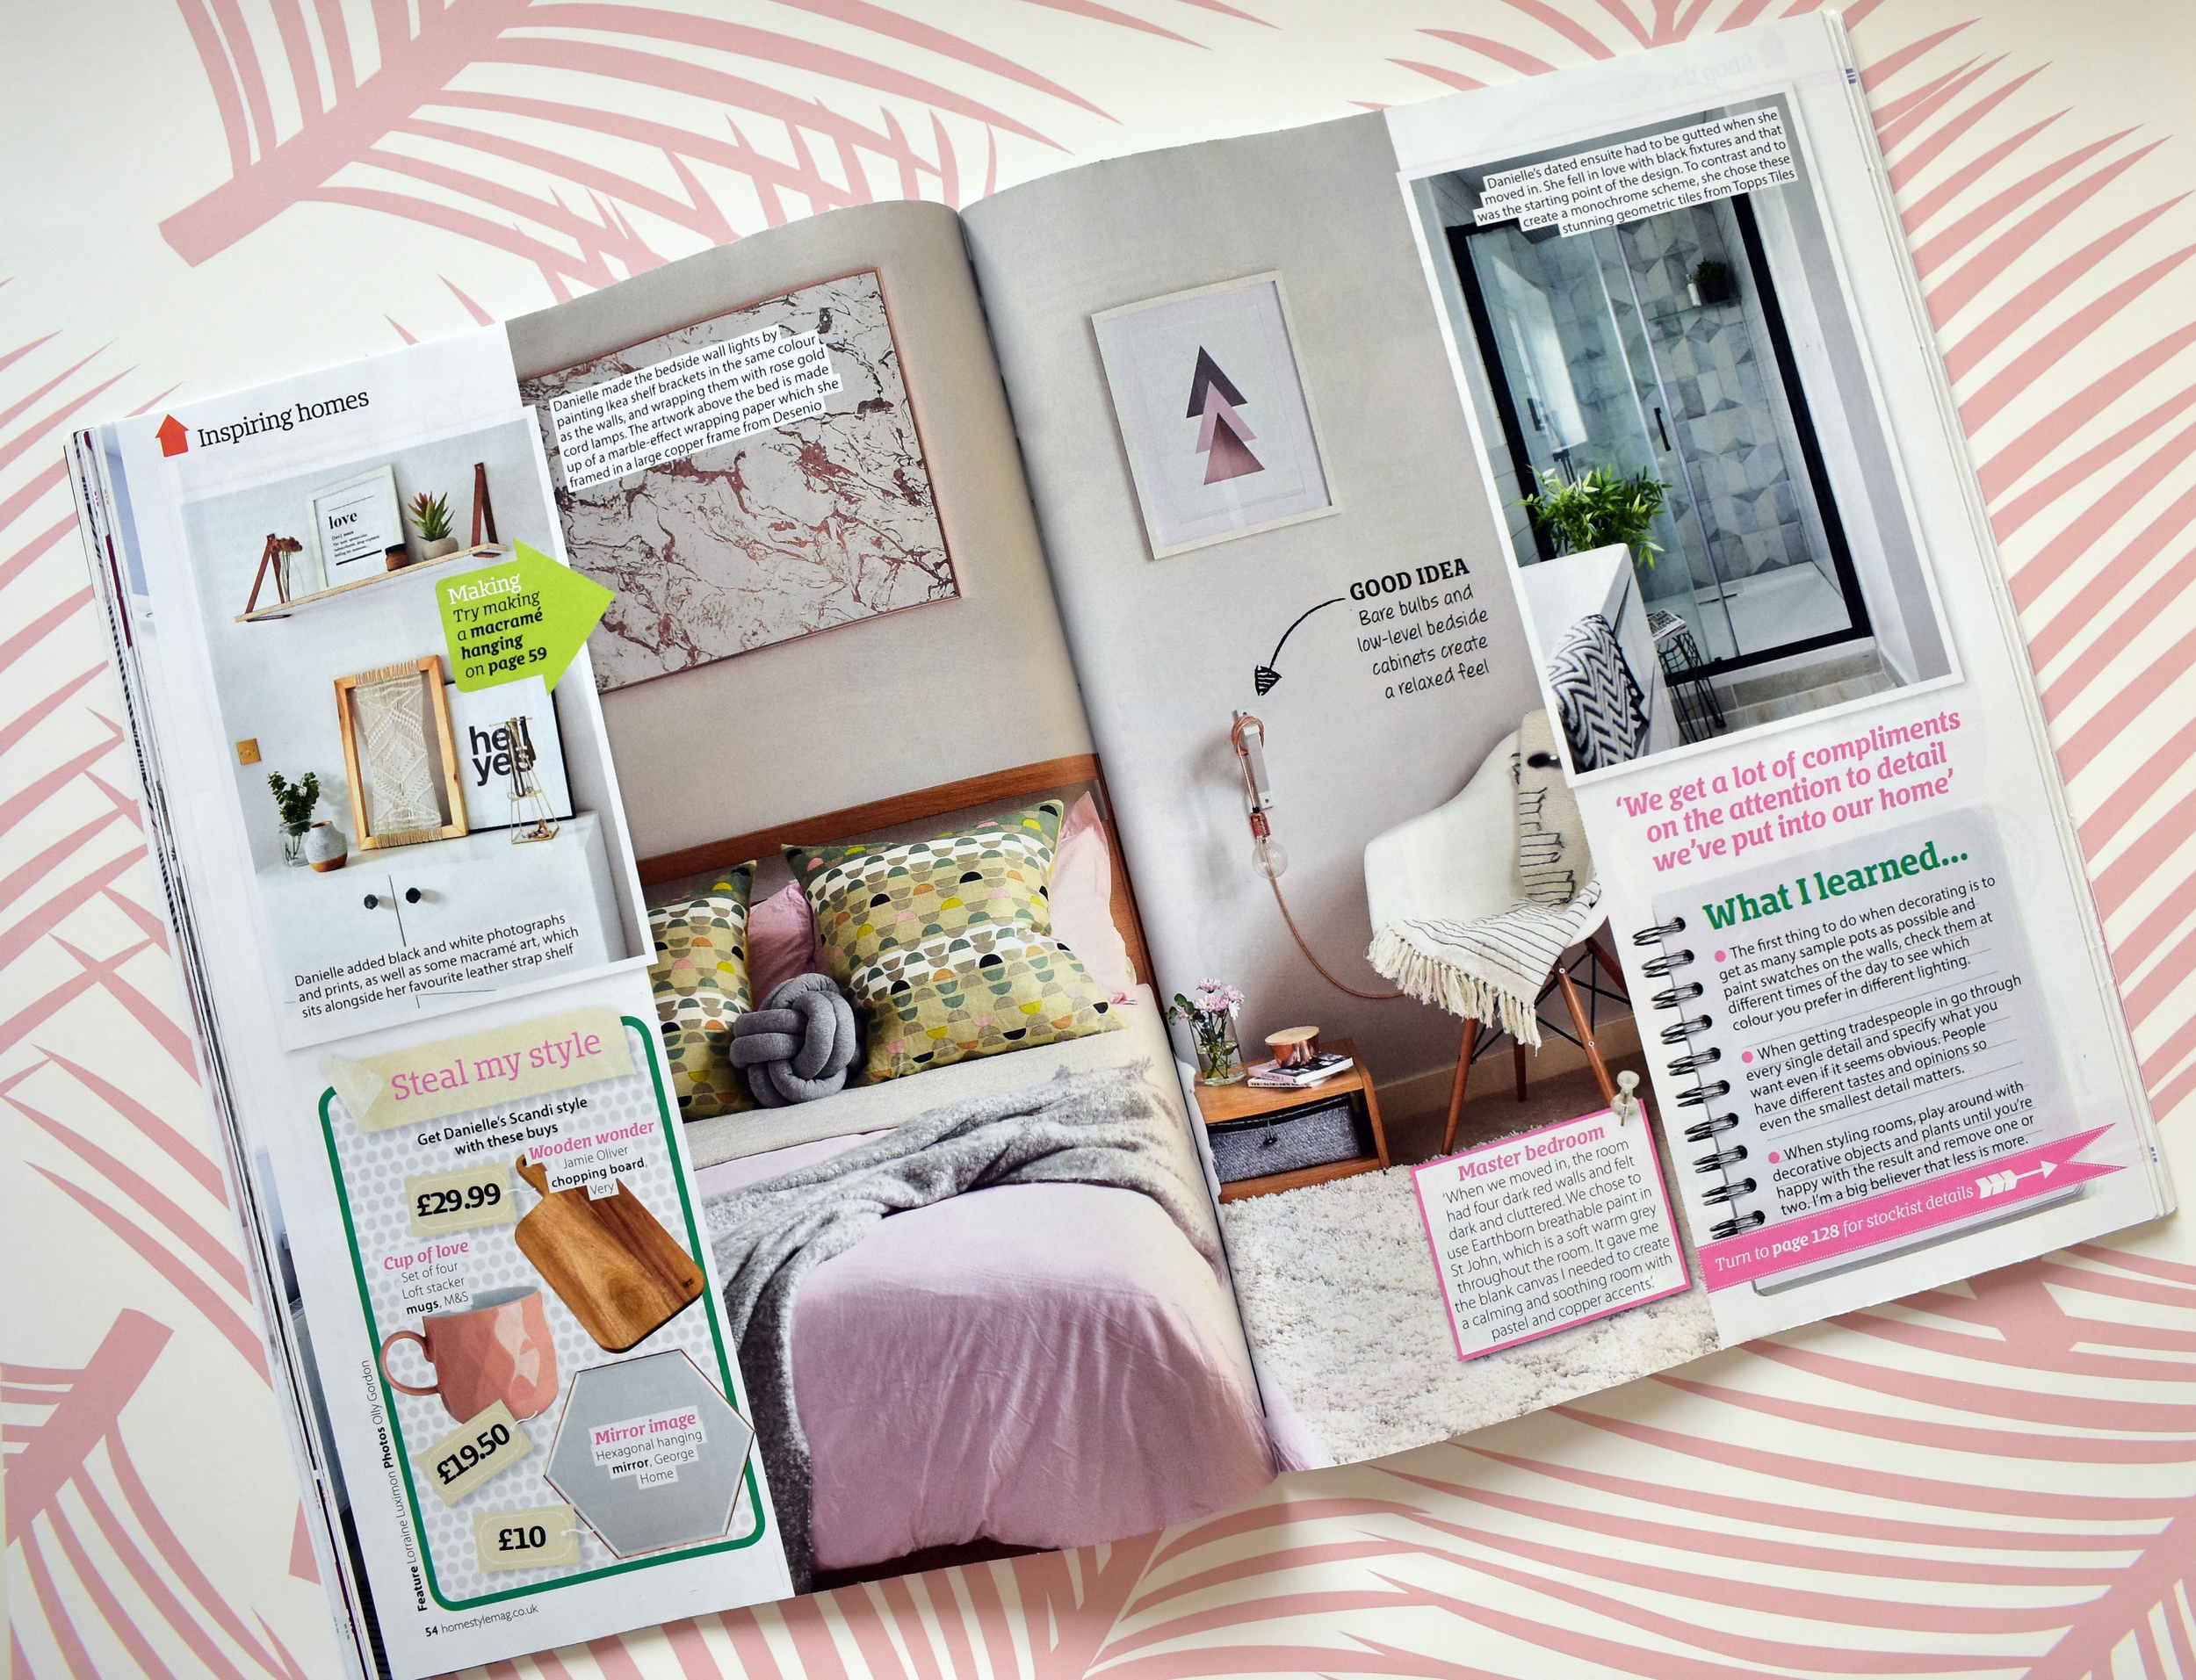 Our bedroom and ensuite featured on Home Style Magazine - October 17